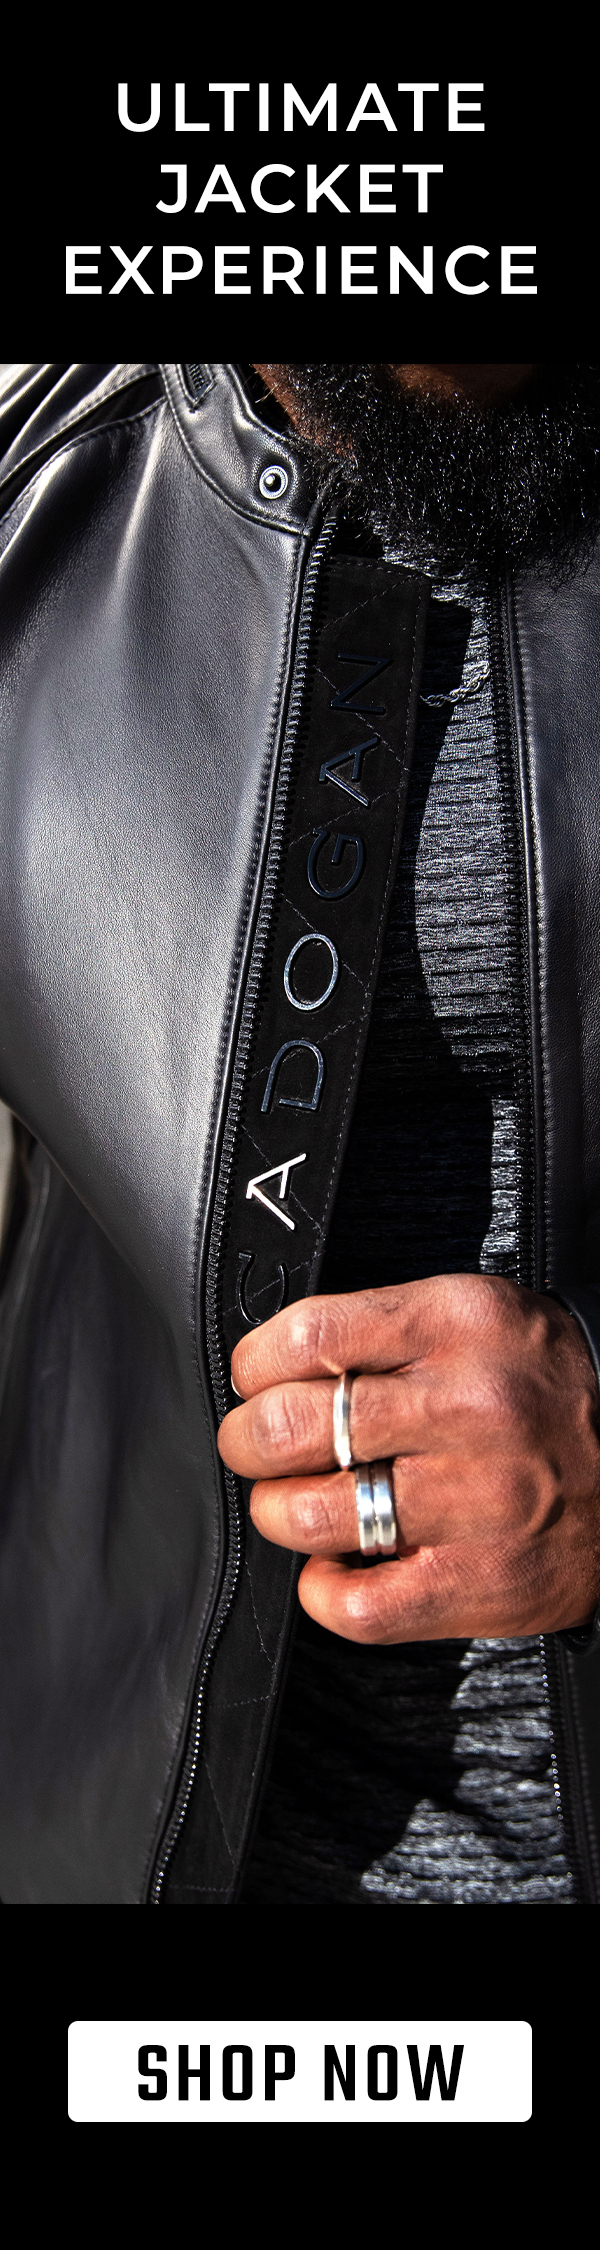 CADOGAN - POWERED BY PURPOSE. SOLIDIFIED BY STYLE.